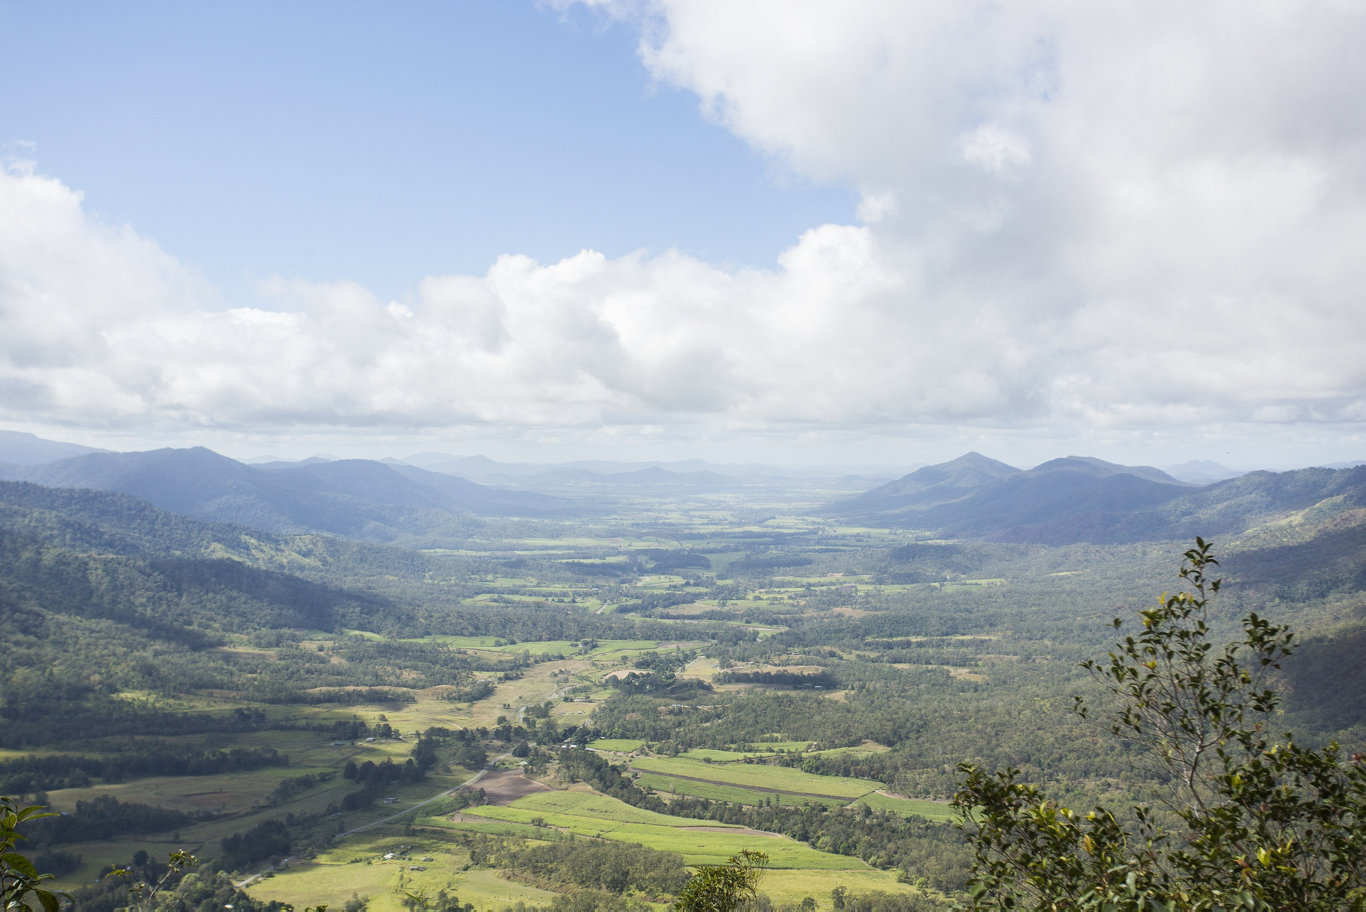 The Eungella National Park Sky Window is a popular tourist destination in the Mackay Region.